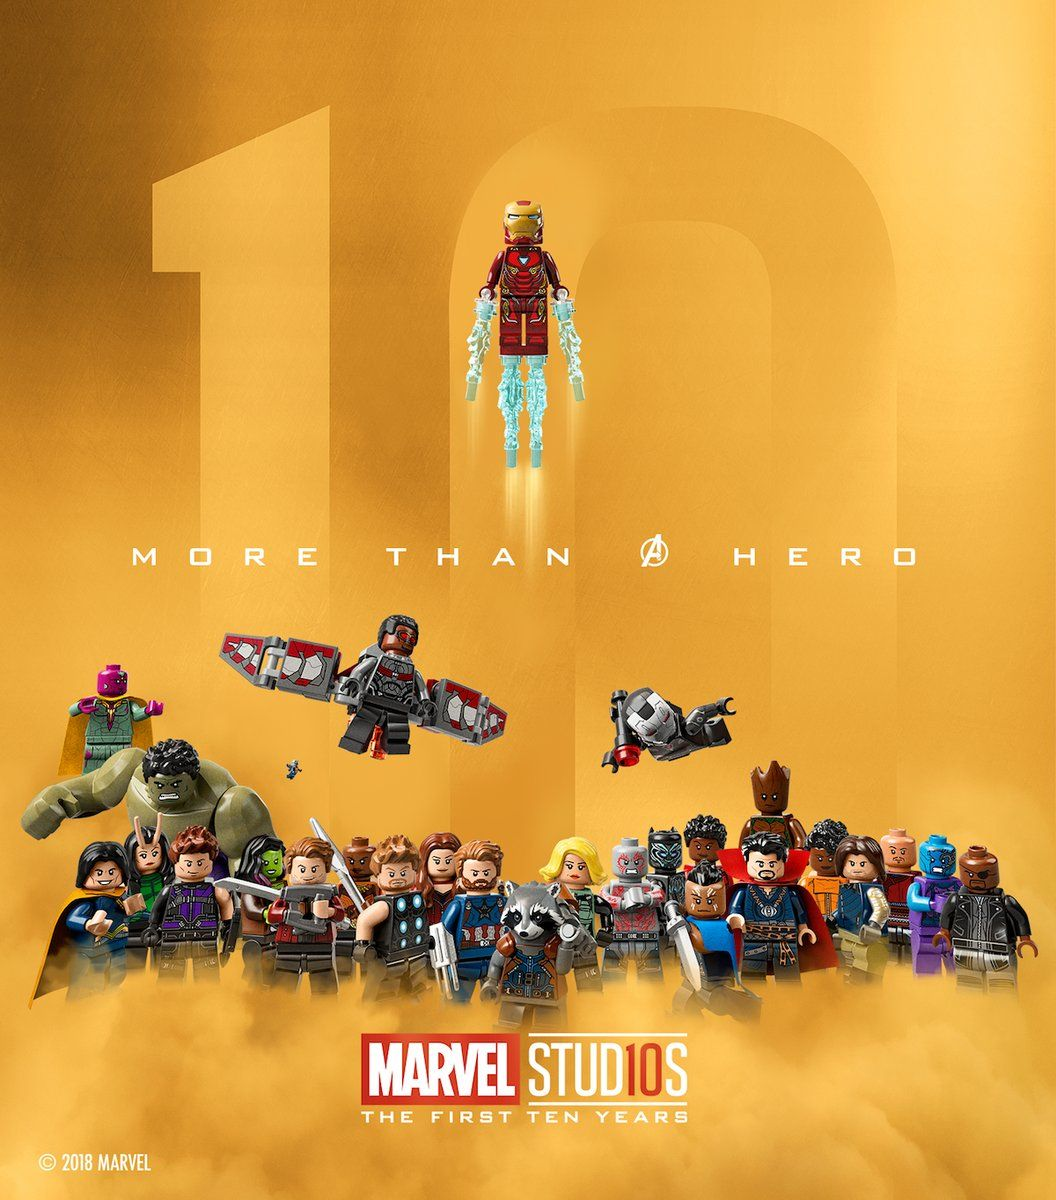 Marvel Studios 10th Anniversary in LEGO Lego poster